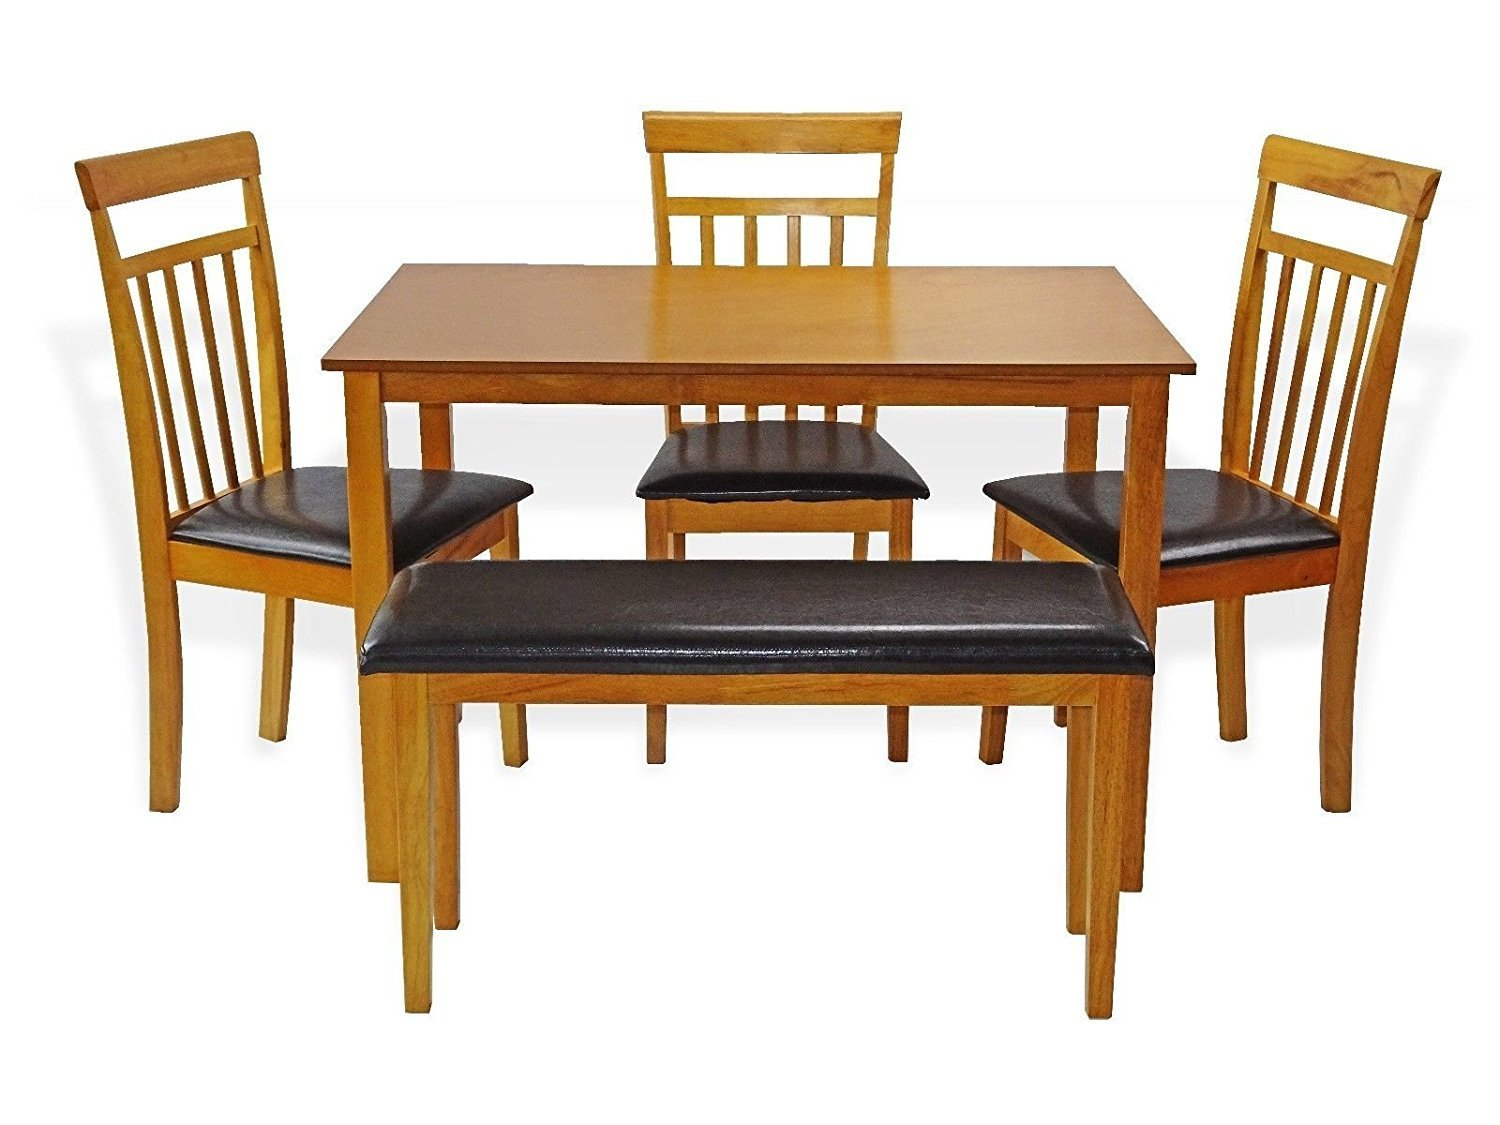 Rattan Wicker Furniture Dining Kitchen Solid Wooden Bench Stained Padded Seat Classic Design in Maple Finish by Rattan Wicker Furniture (Image #6)